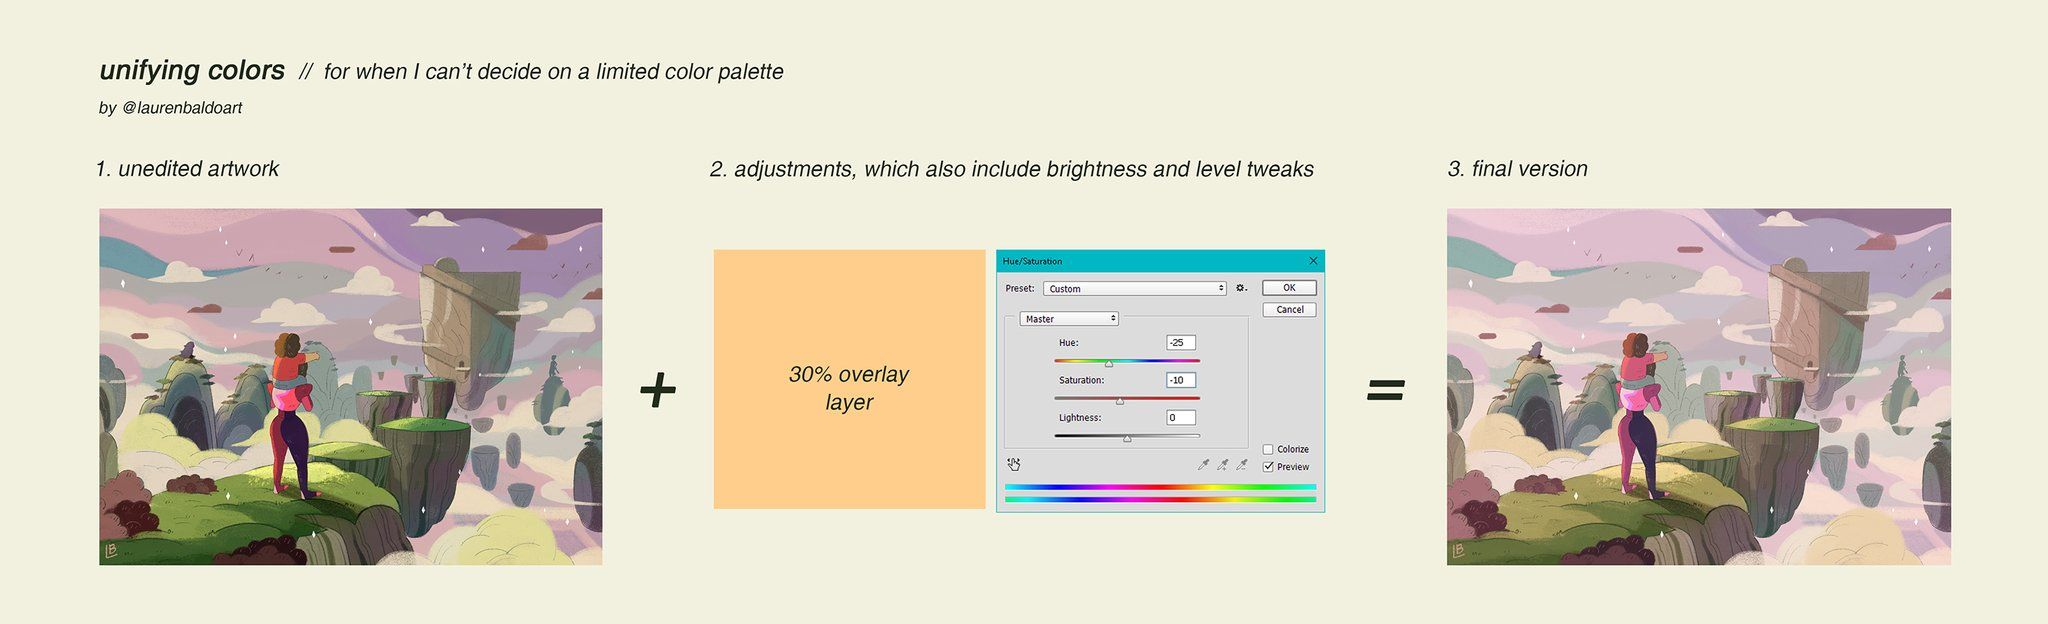 Makahiya on Twitter | Color theory, Color palette, Overlays